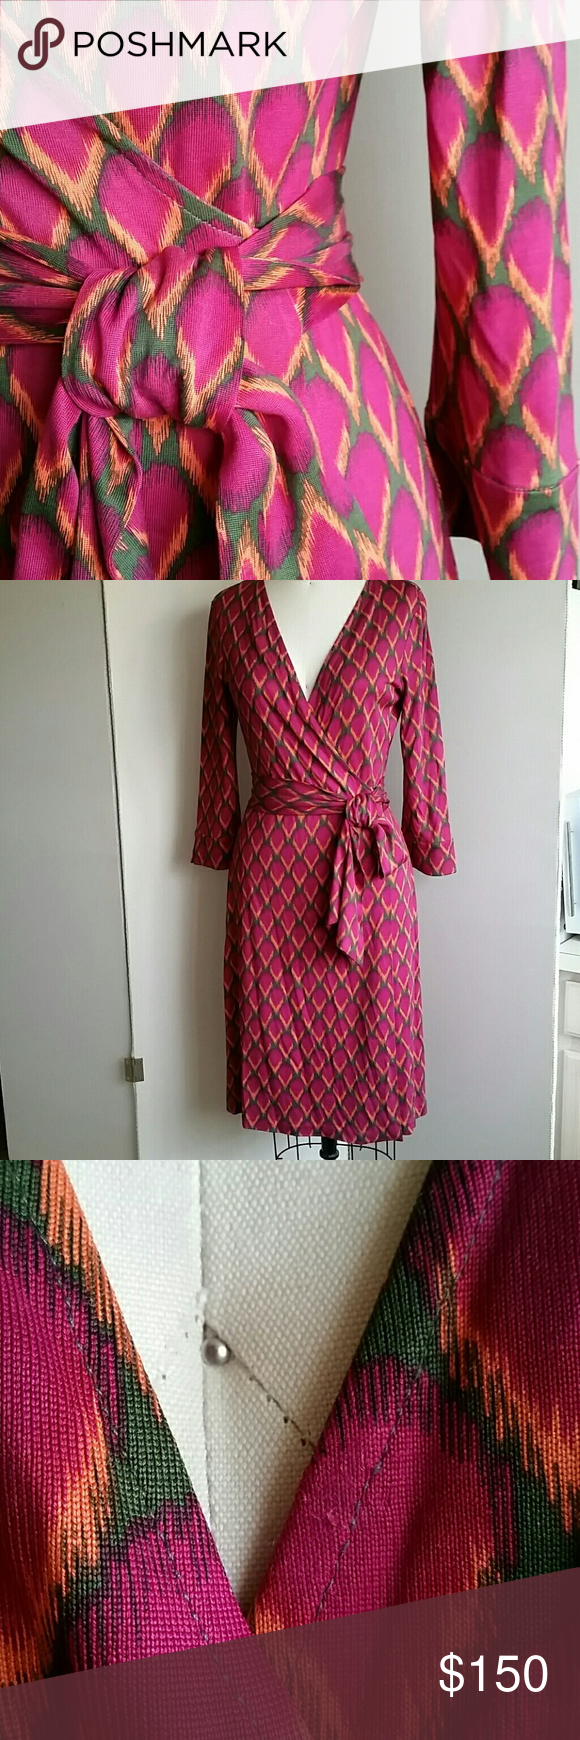 DvF Pink Julian D189001V7F Size 12 Vintage Label Excellent condition, see photo 3 where previous owner had snap put on. I removed it as best I could. Looks more prominent in pic than real life. Fushia, orange against a dark greenish brown. Diane von Furstenberg Dresses